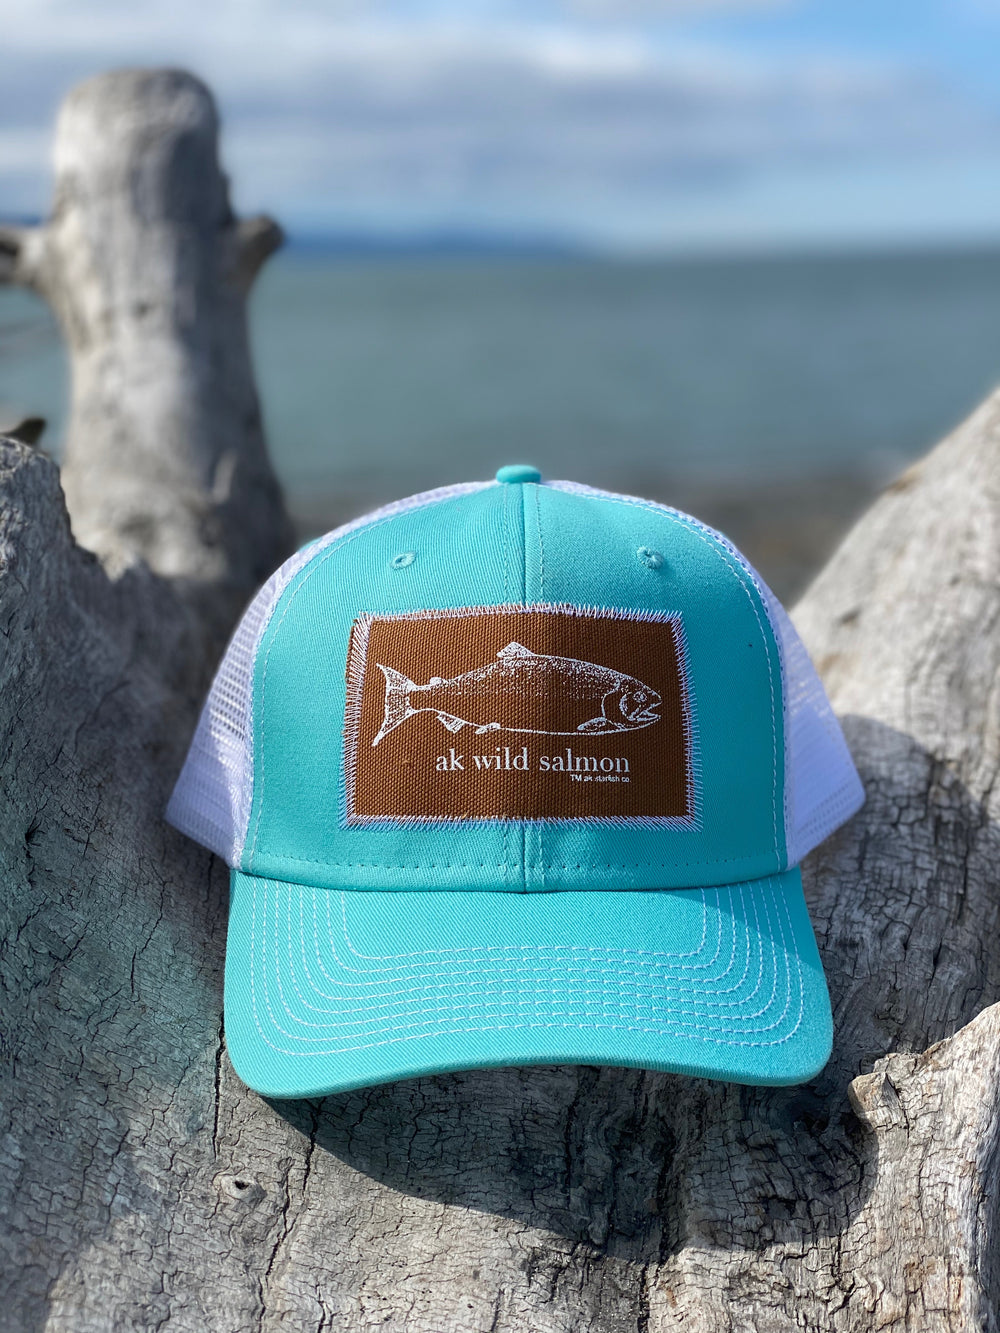 Glacier AK Wild Salmon Patch Hat $35.00